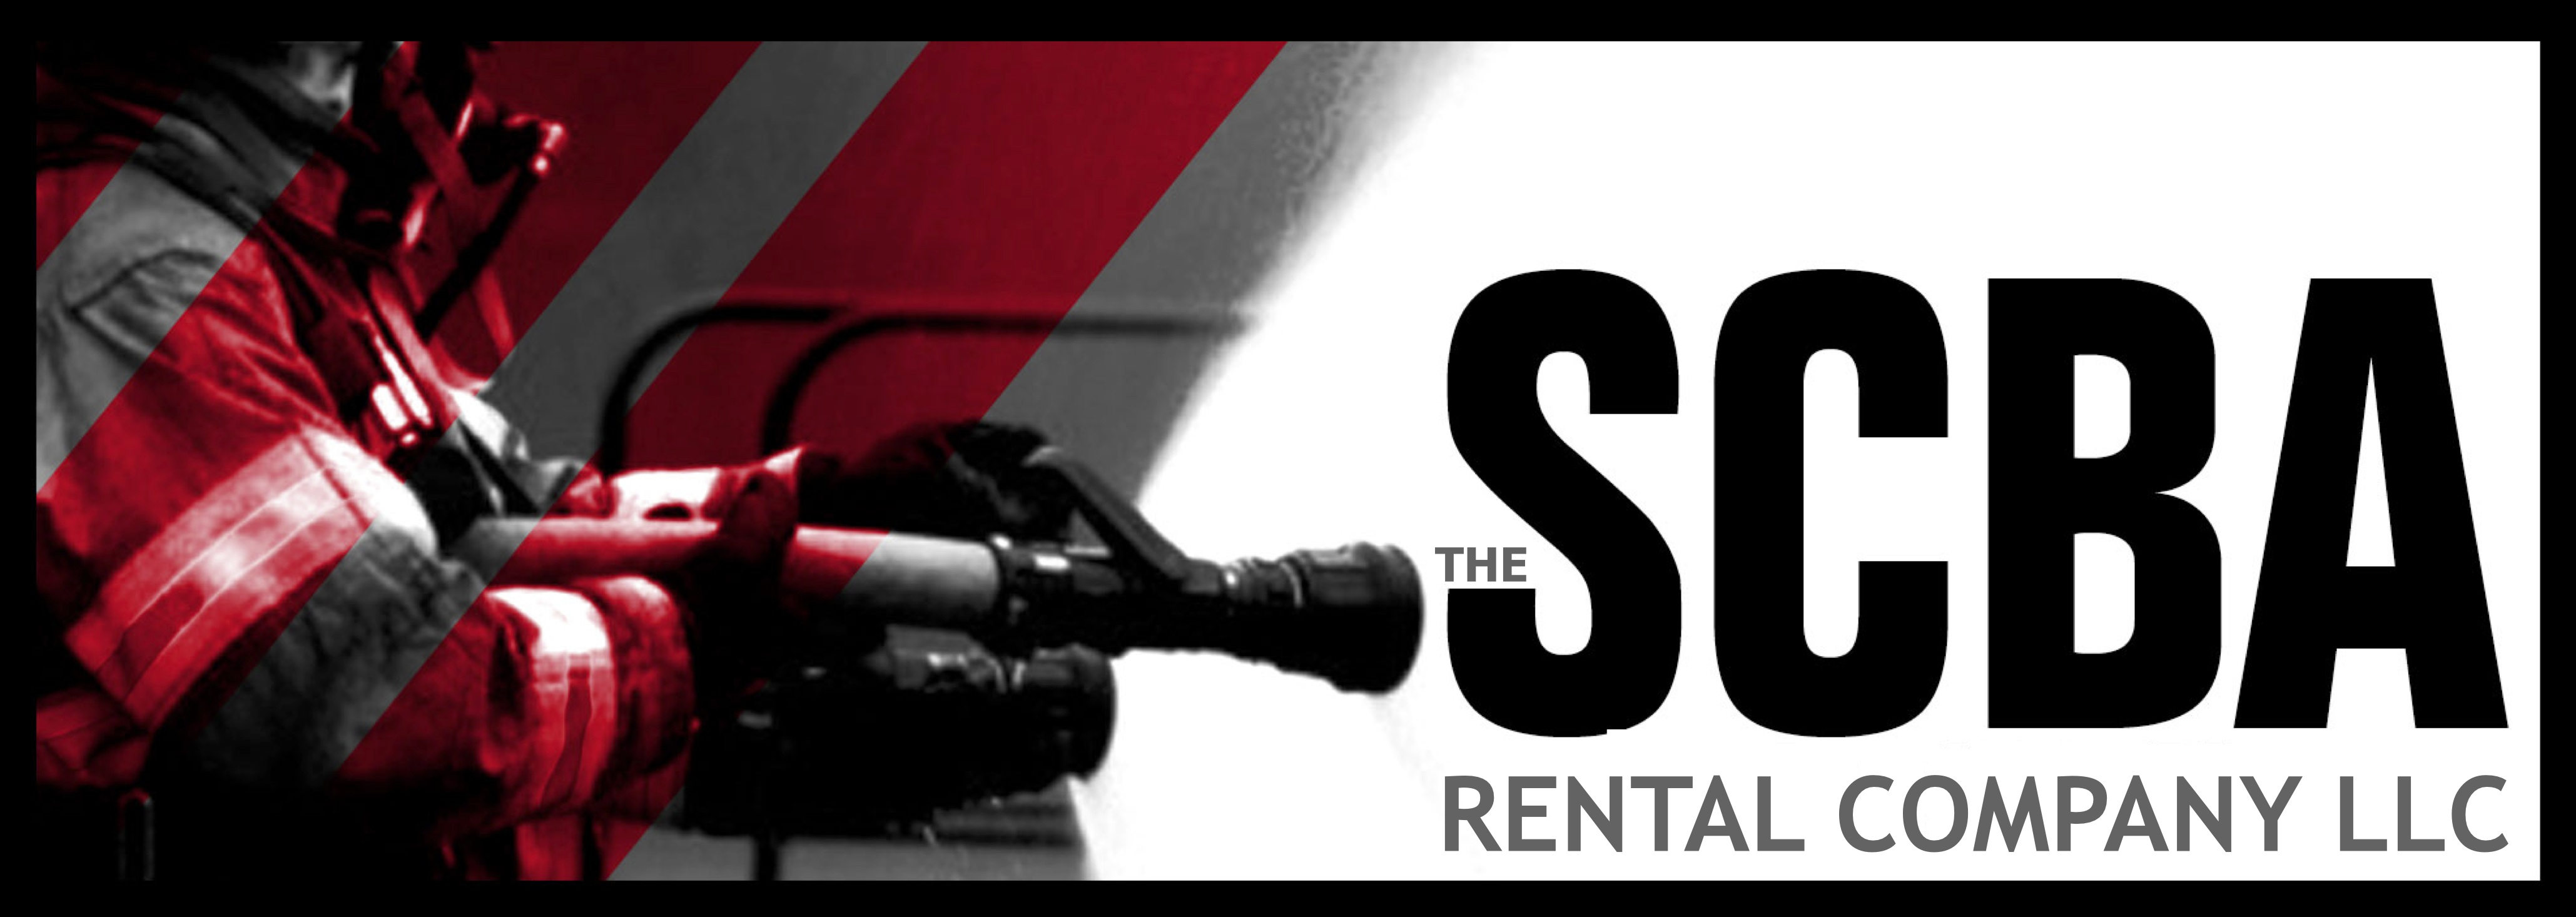 SCBA Rental Co. Inc.